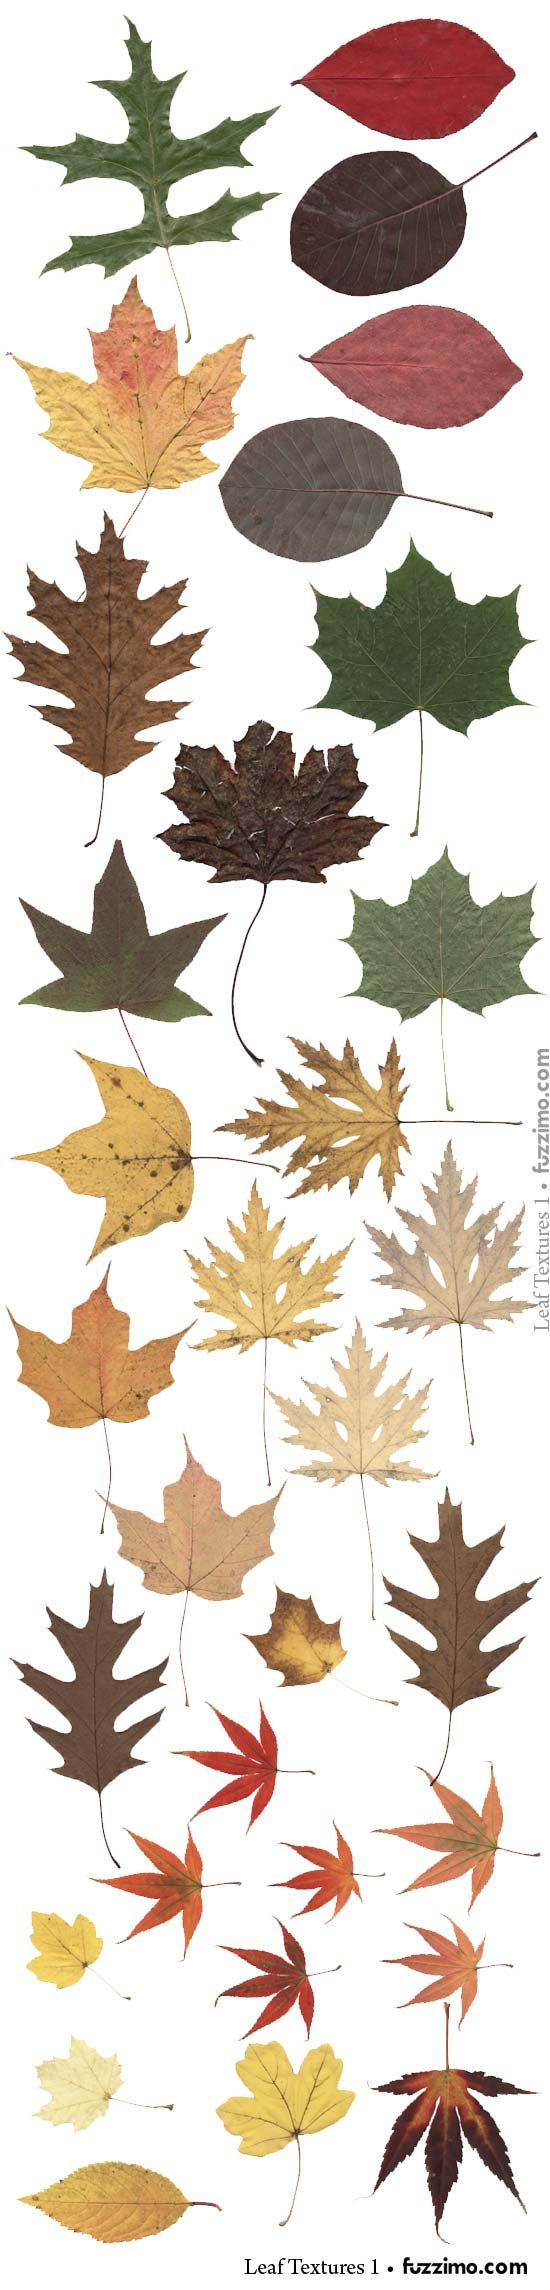 Free leaf vector images from Fuzzimo.- I've used Fuzzimo before and their images are very high quality